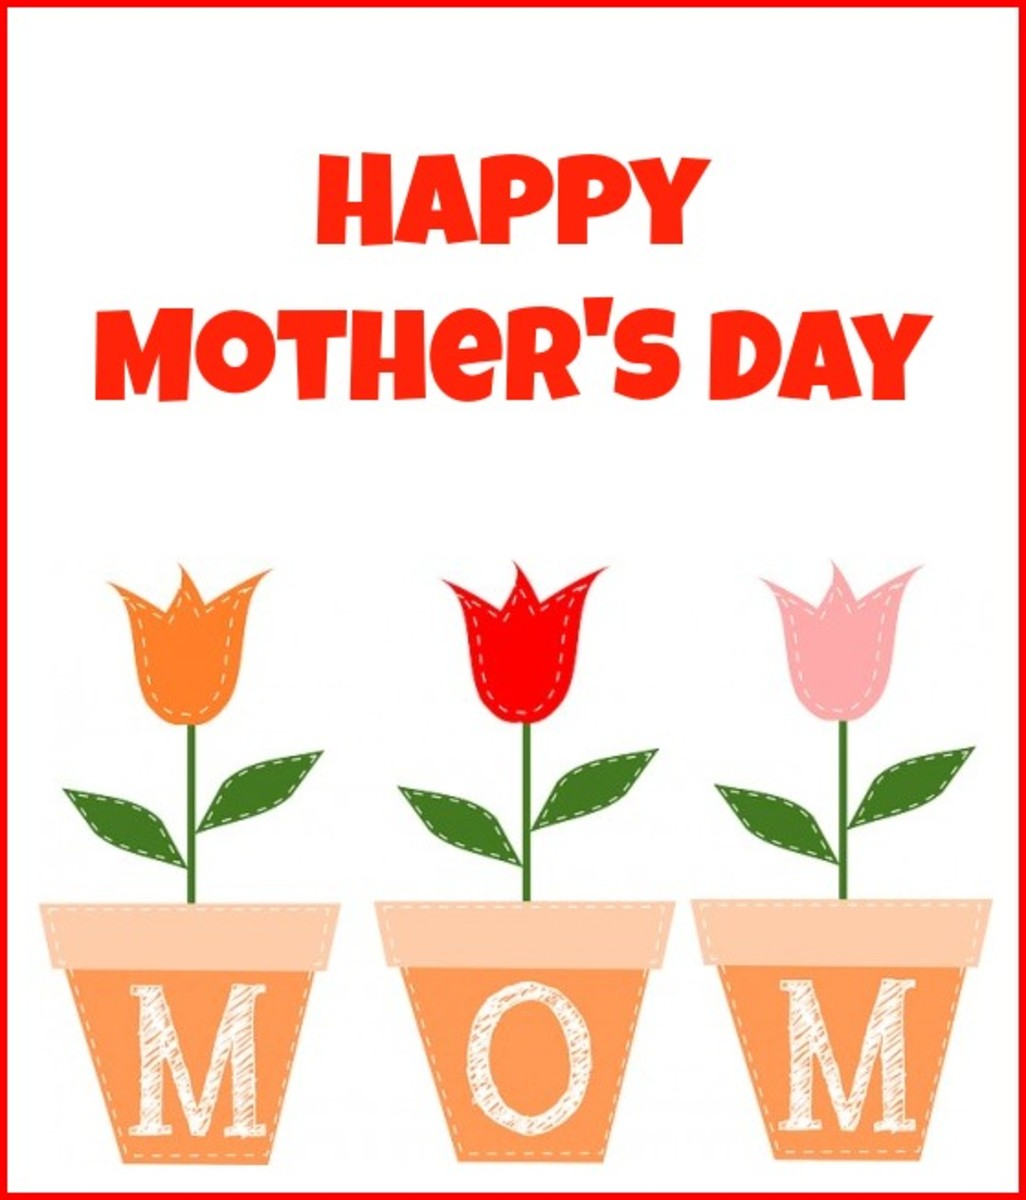 Happy Mother's Day Picture with Tulips in Pots